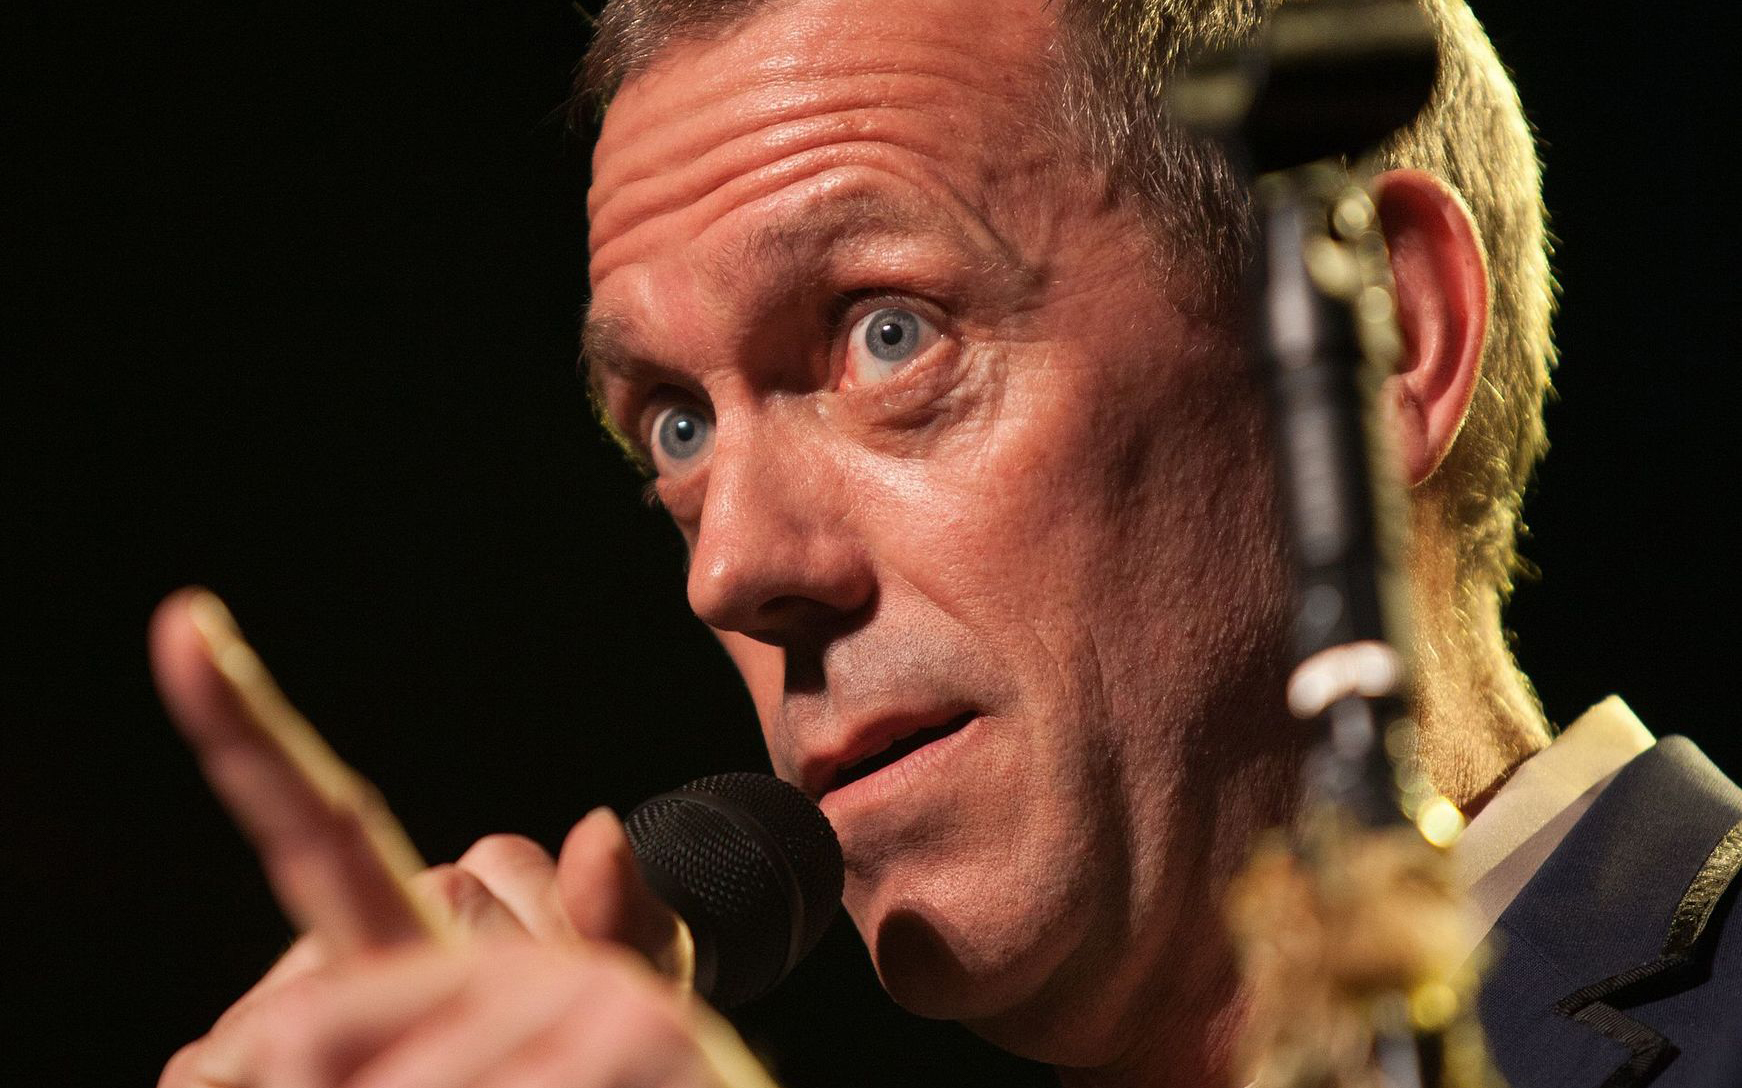 Hugh Laurie with microphone answering questions